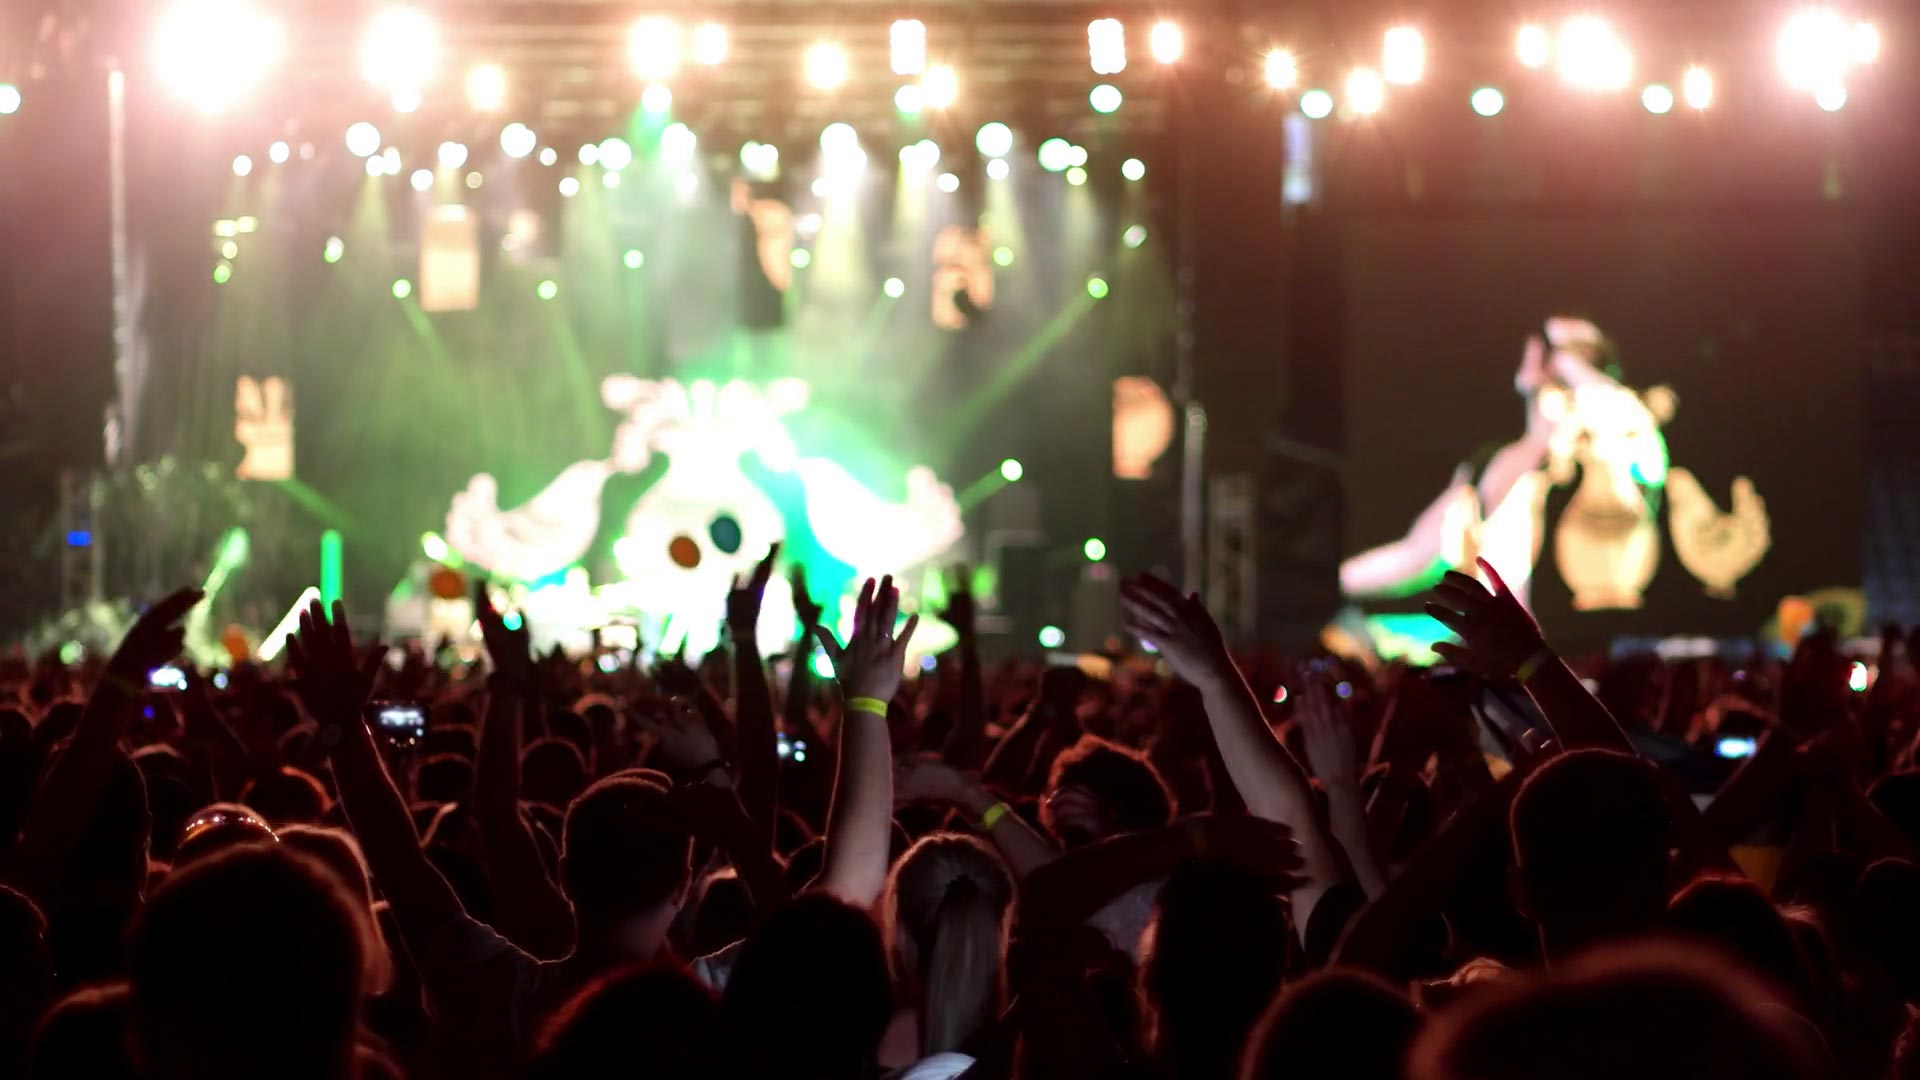 Event Security guard services for concerts, festivals, and more by Genuine Security